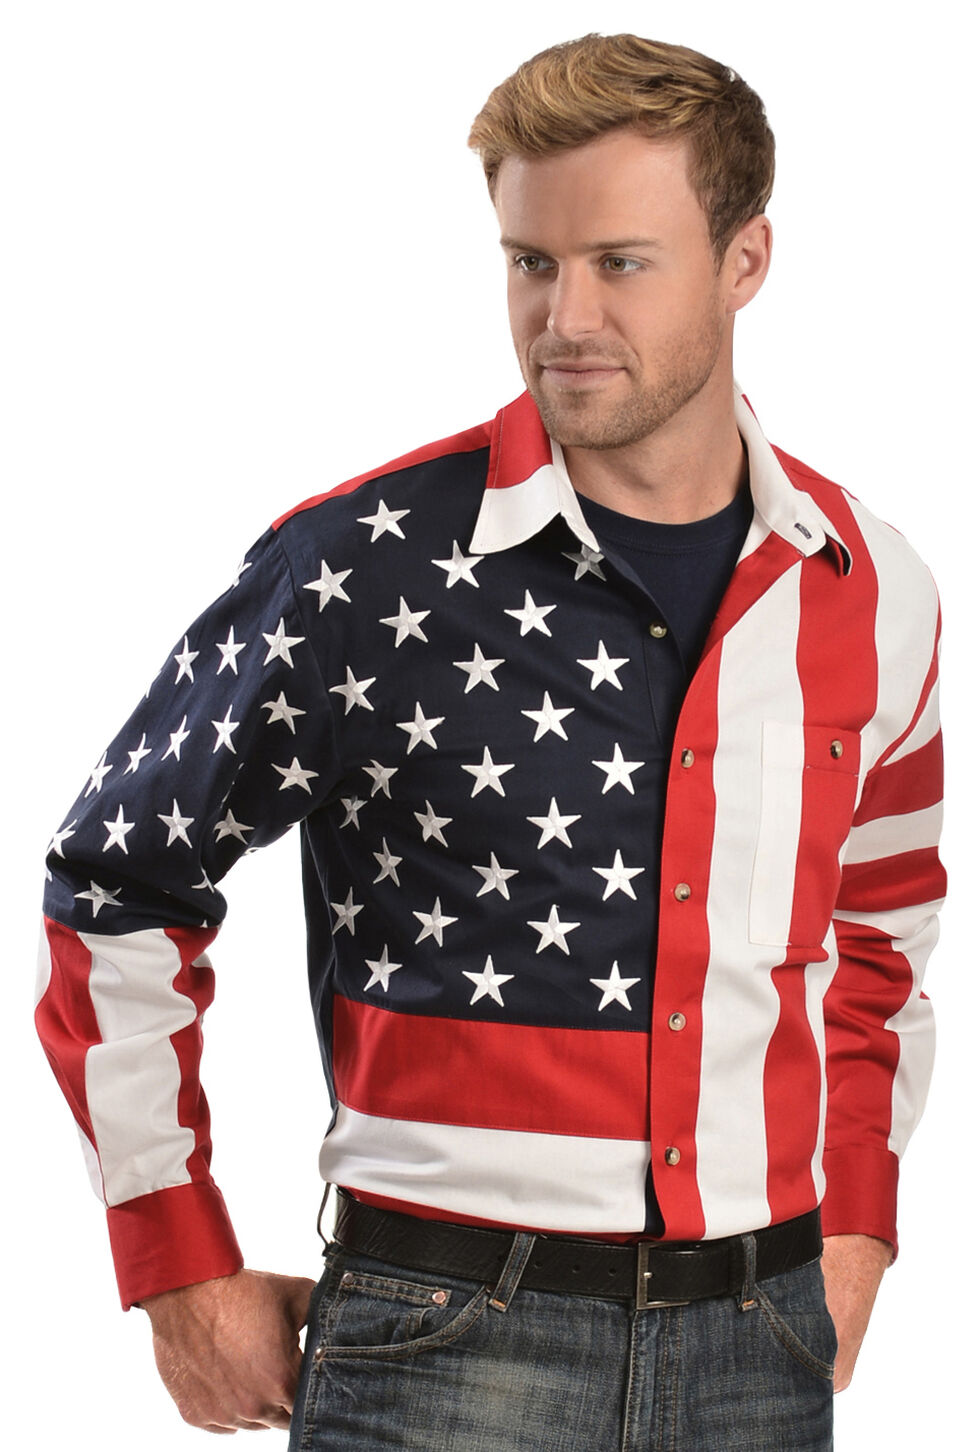 Scully Patriotic American Flag Western Shirt - Big & Tall, Multi, hi-res